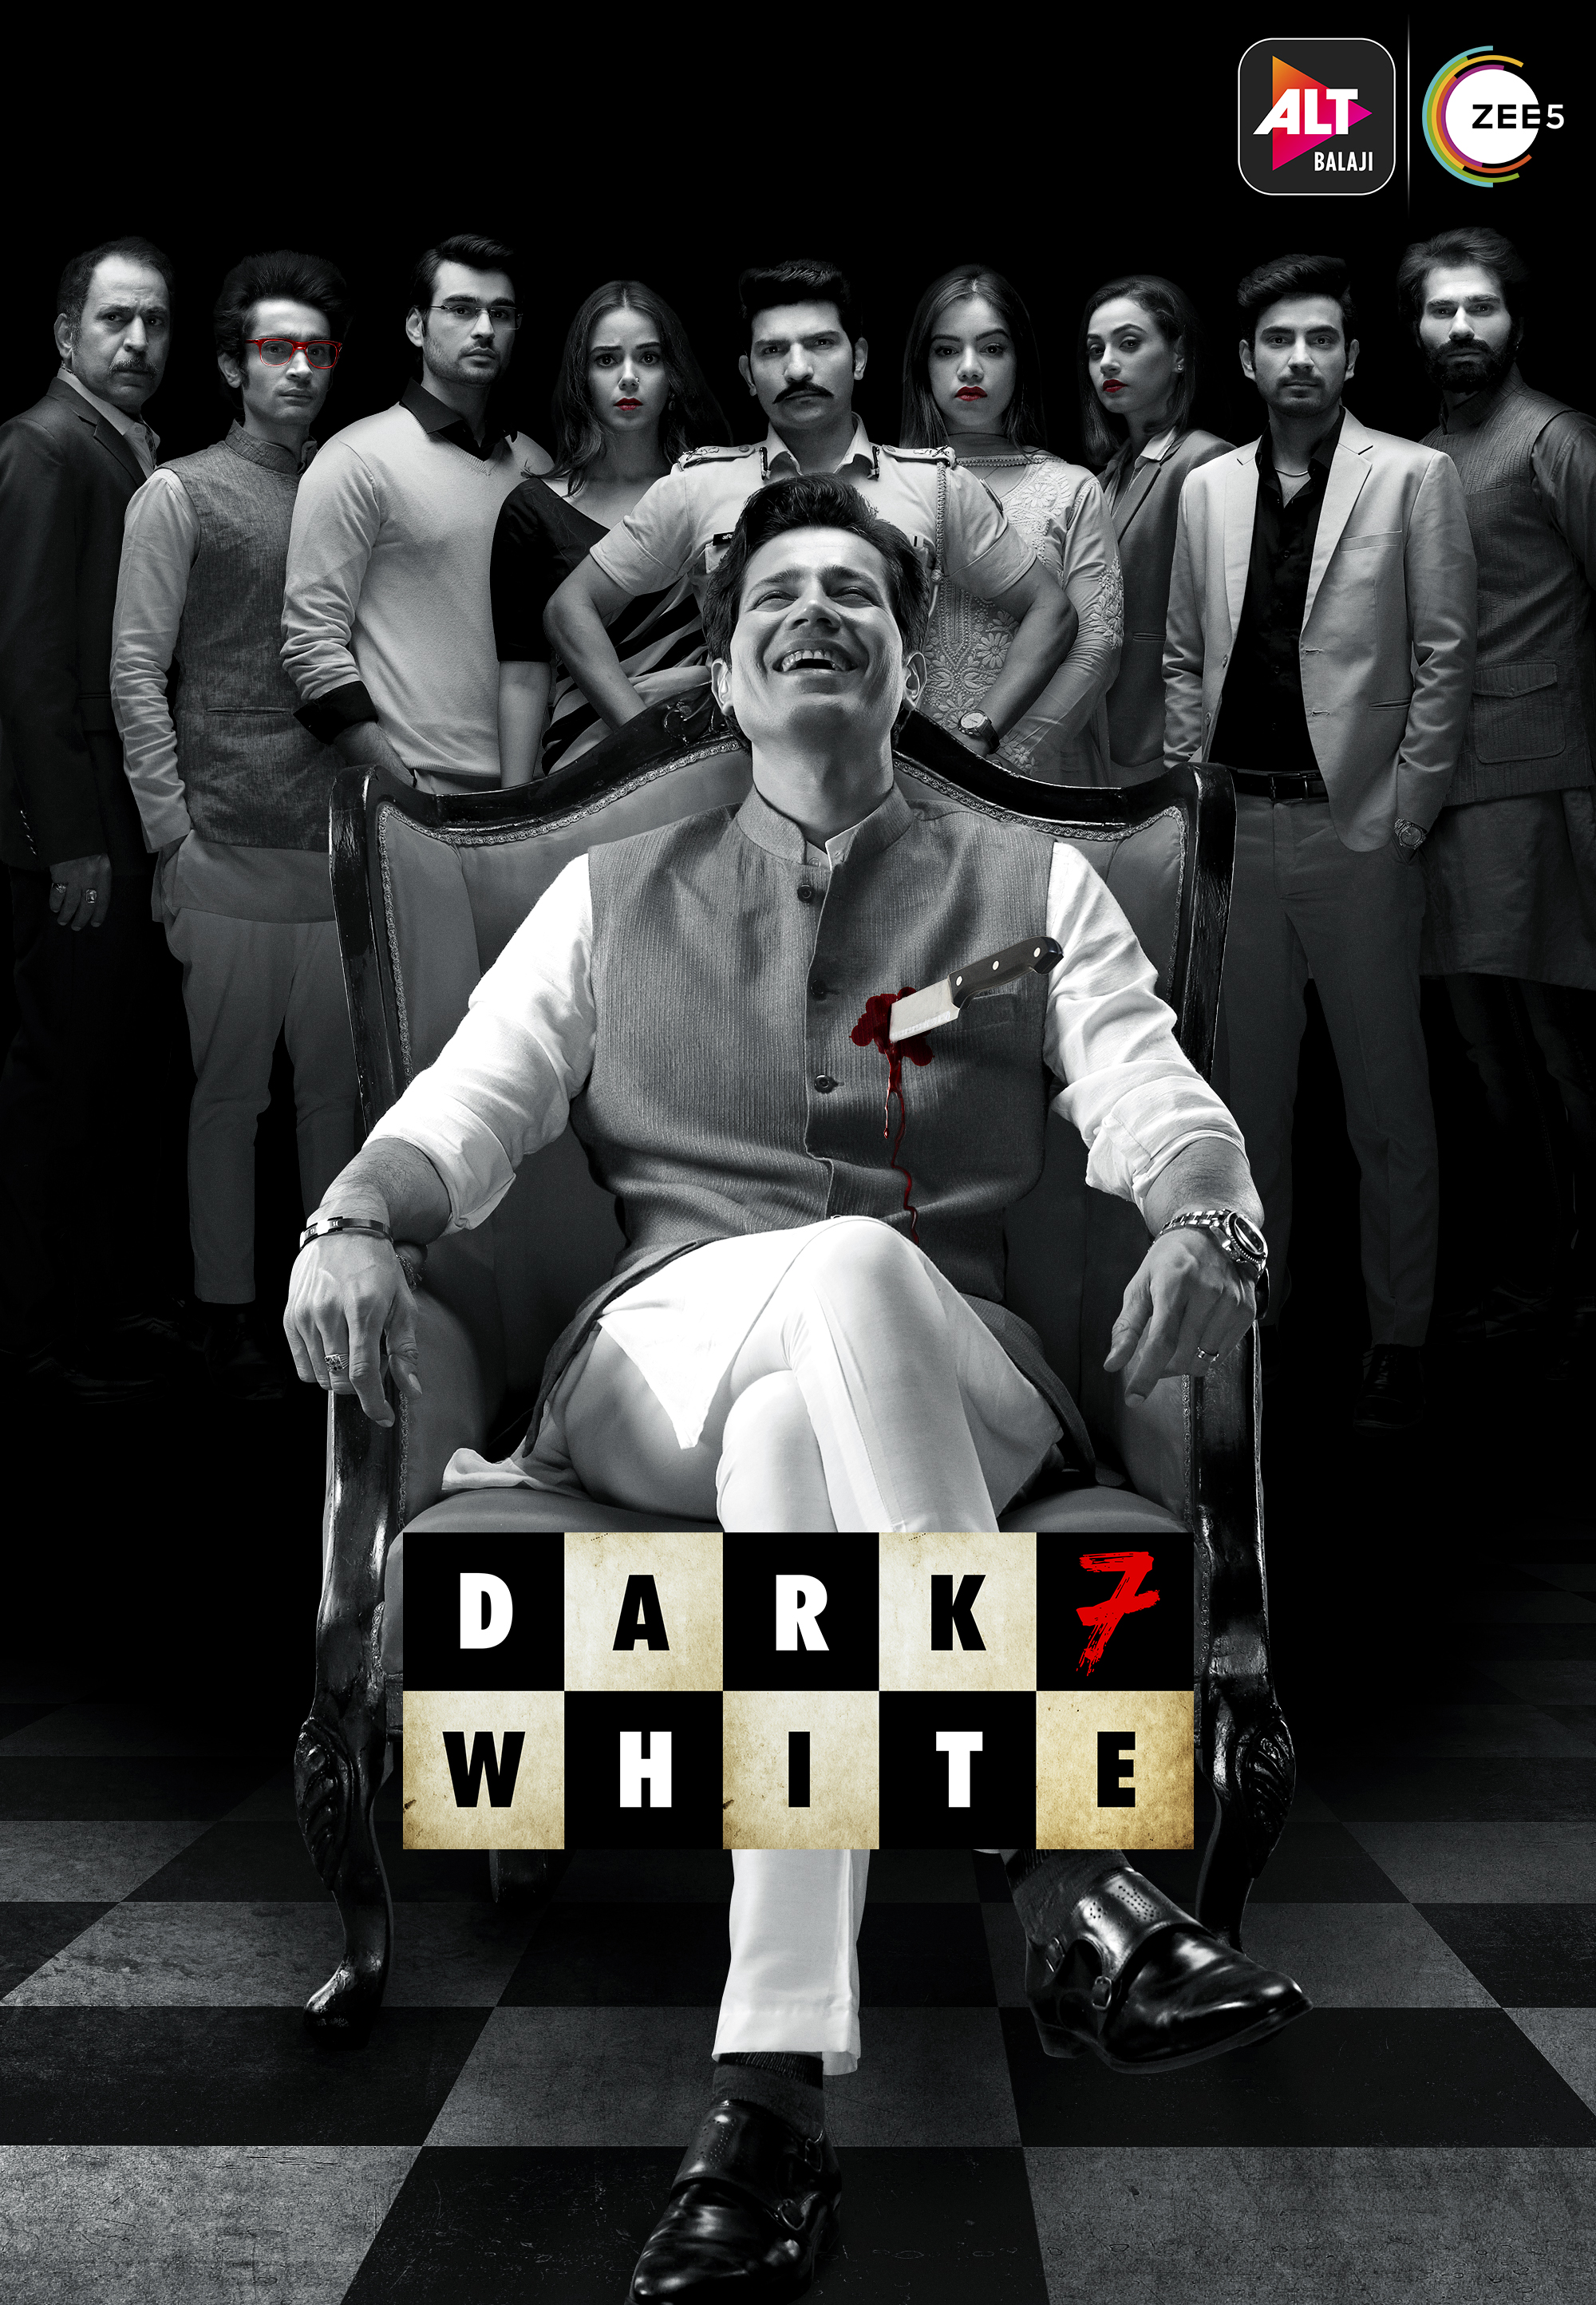 Dark 7 White 2020 S01 Hindi Complete ALTBalaji Original Web Series 1080p HDRip 3.1GB Download